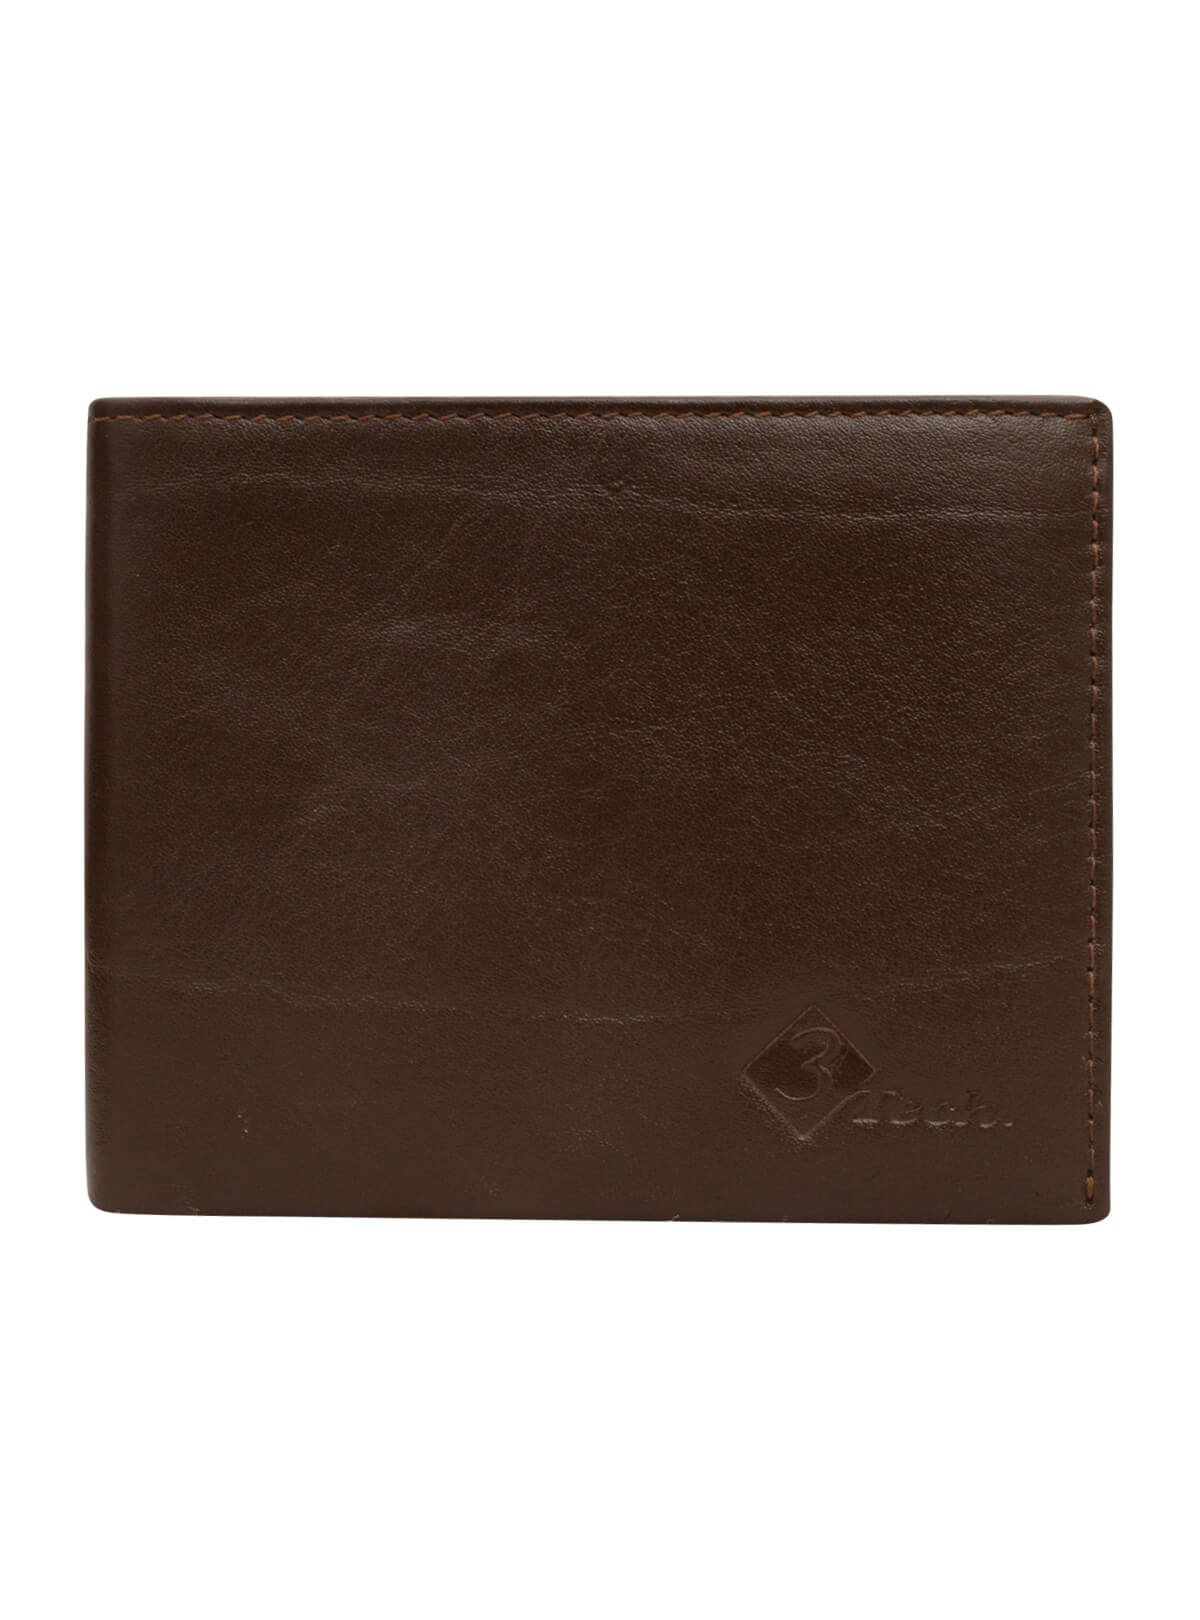 Personalised Plain Leather Wallet